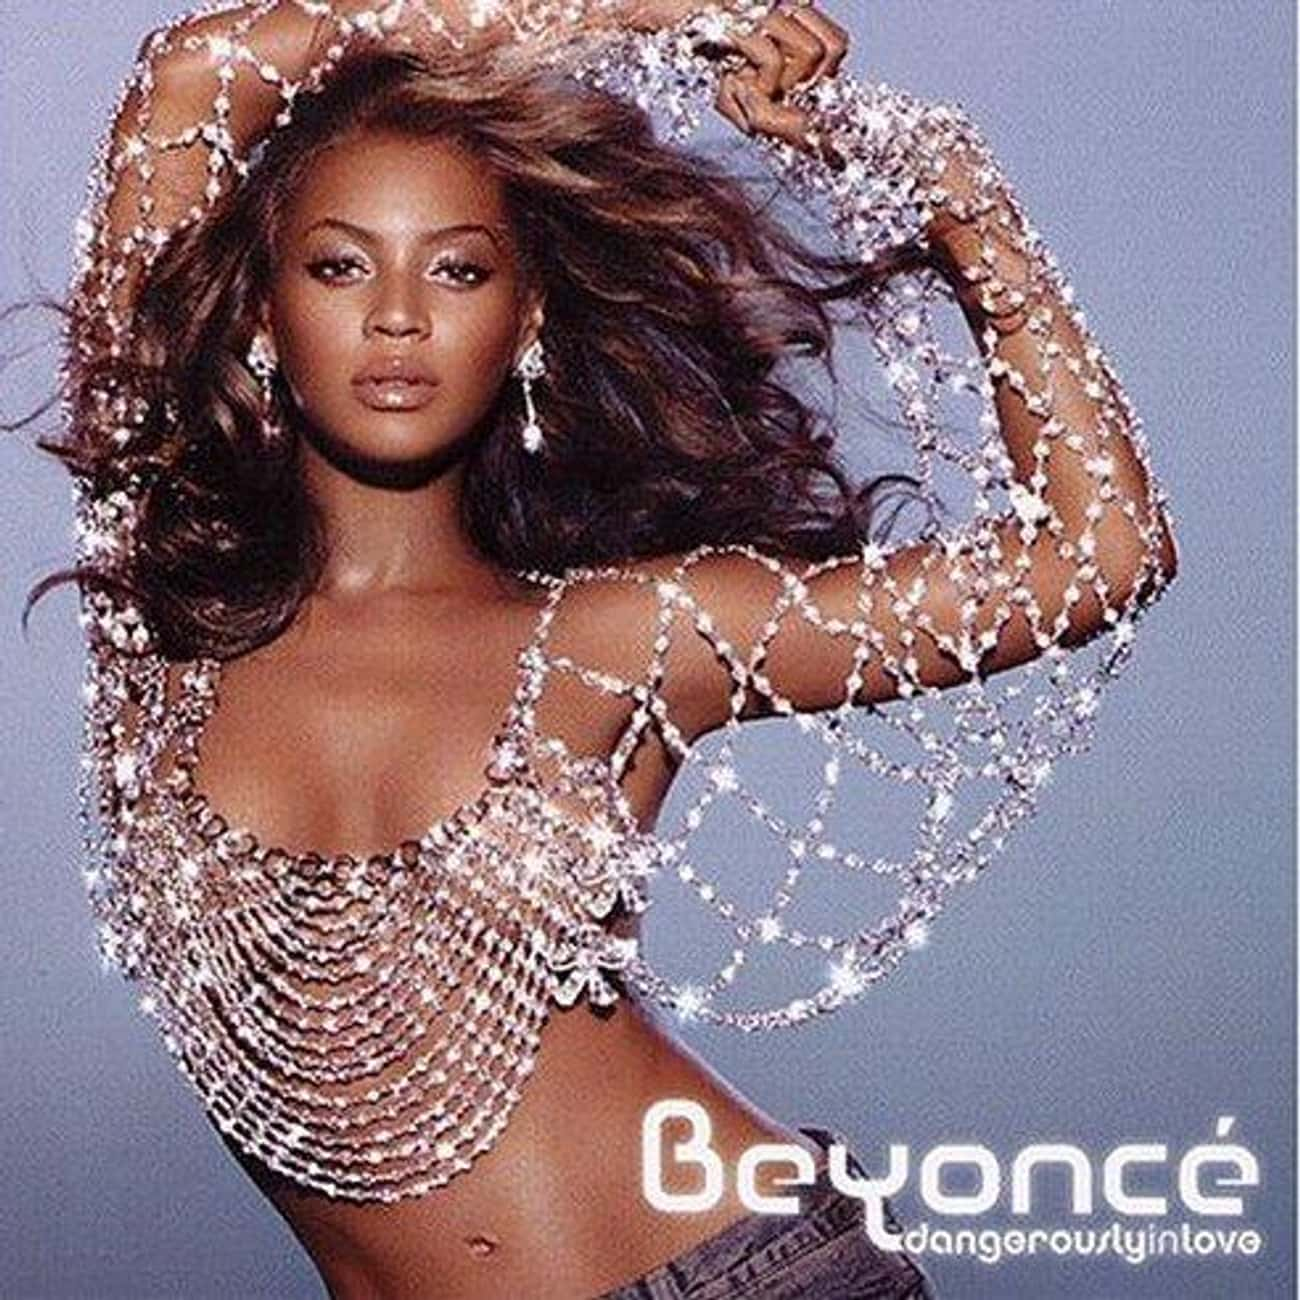 Dangerously in Love is listed (or ranked) 1 on the list The Best Beyonce Albums, Ranked